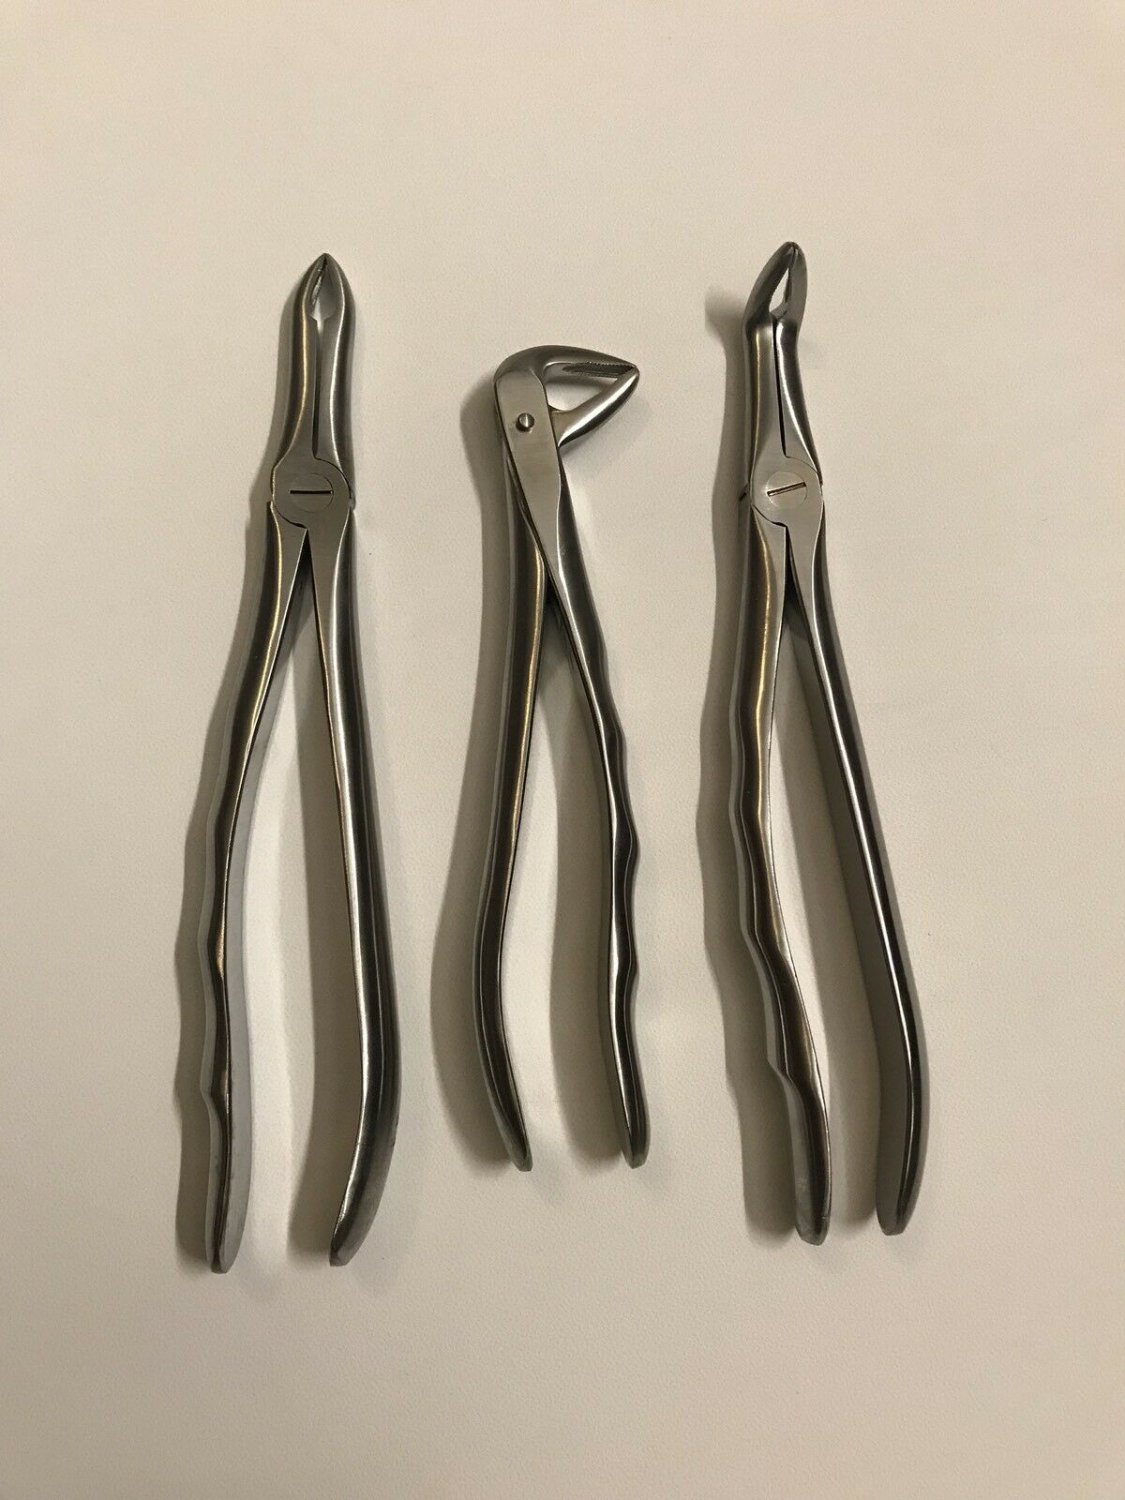 Root Tip Extracting Forceps 3 PCs Set Dental Instruments